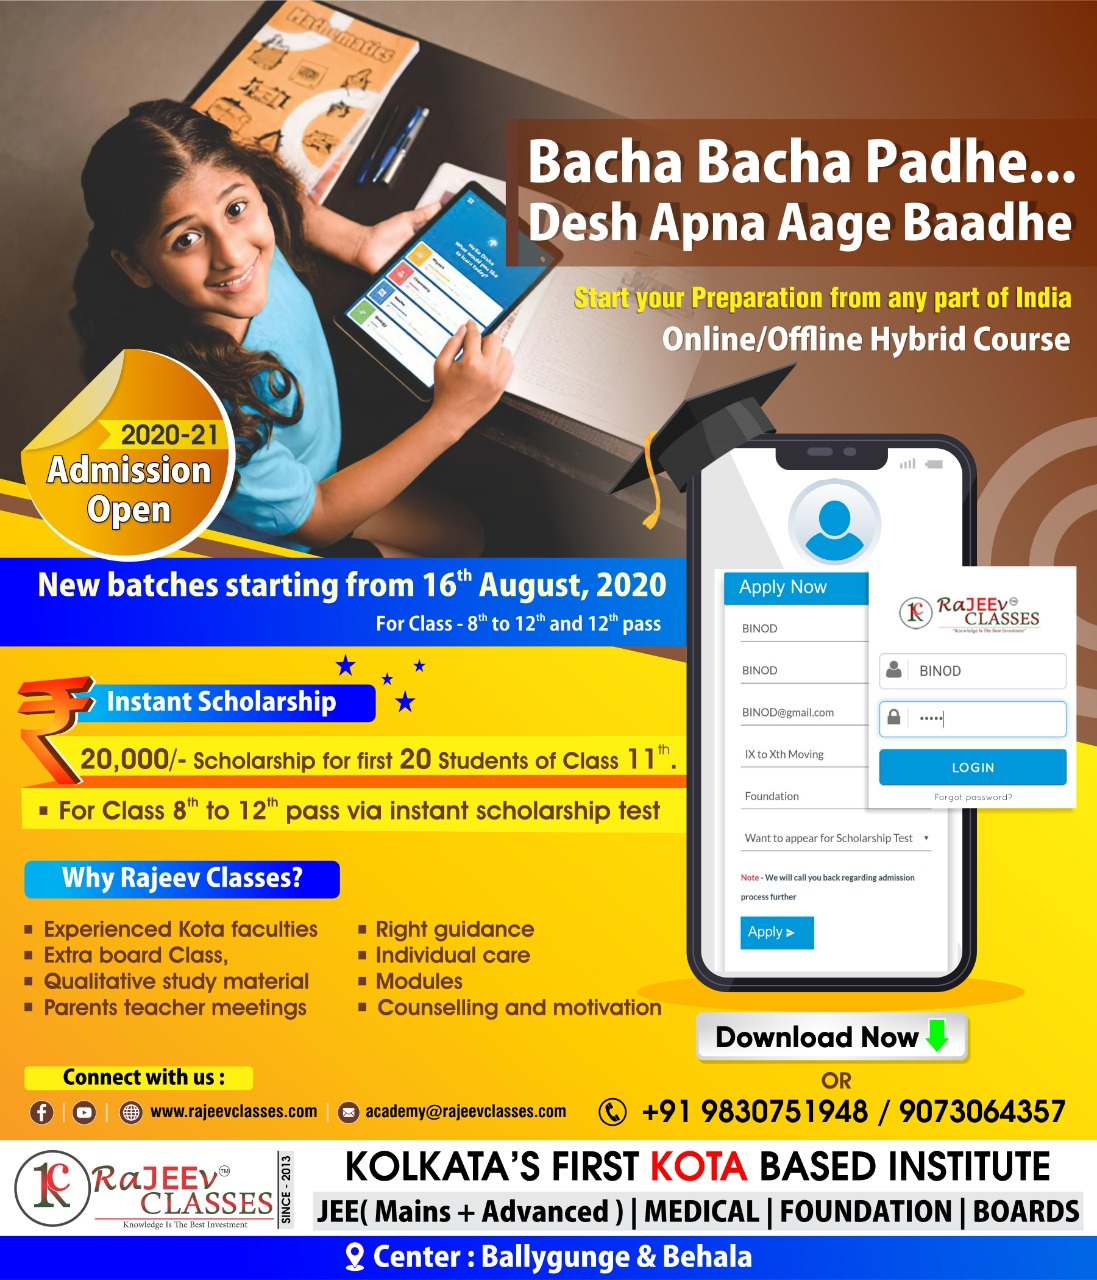 Why you should install Rajeev classes- Kolkata first Kota based institute application for your better preparation of Neet/Jee or boards.